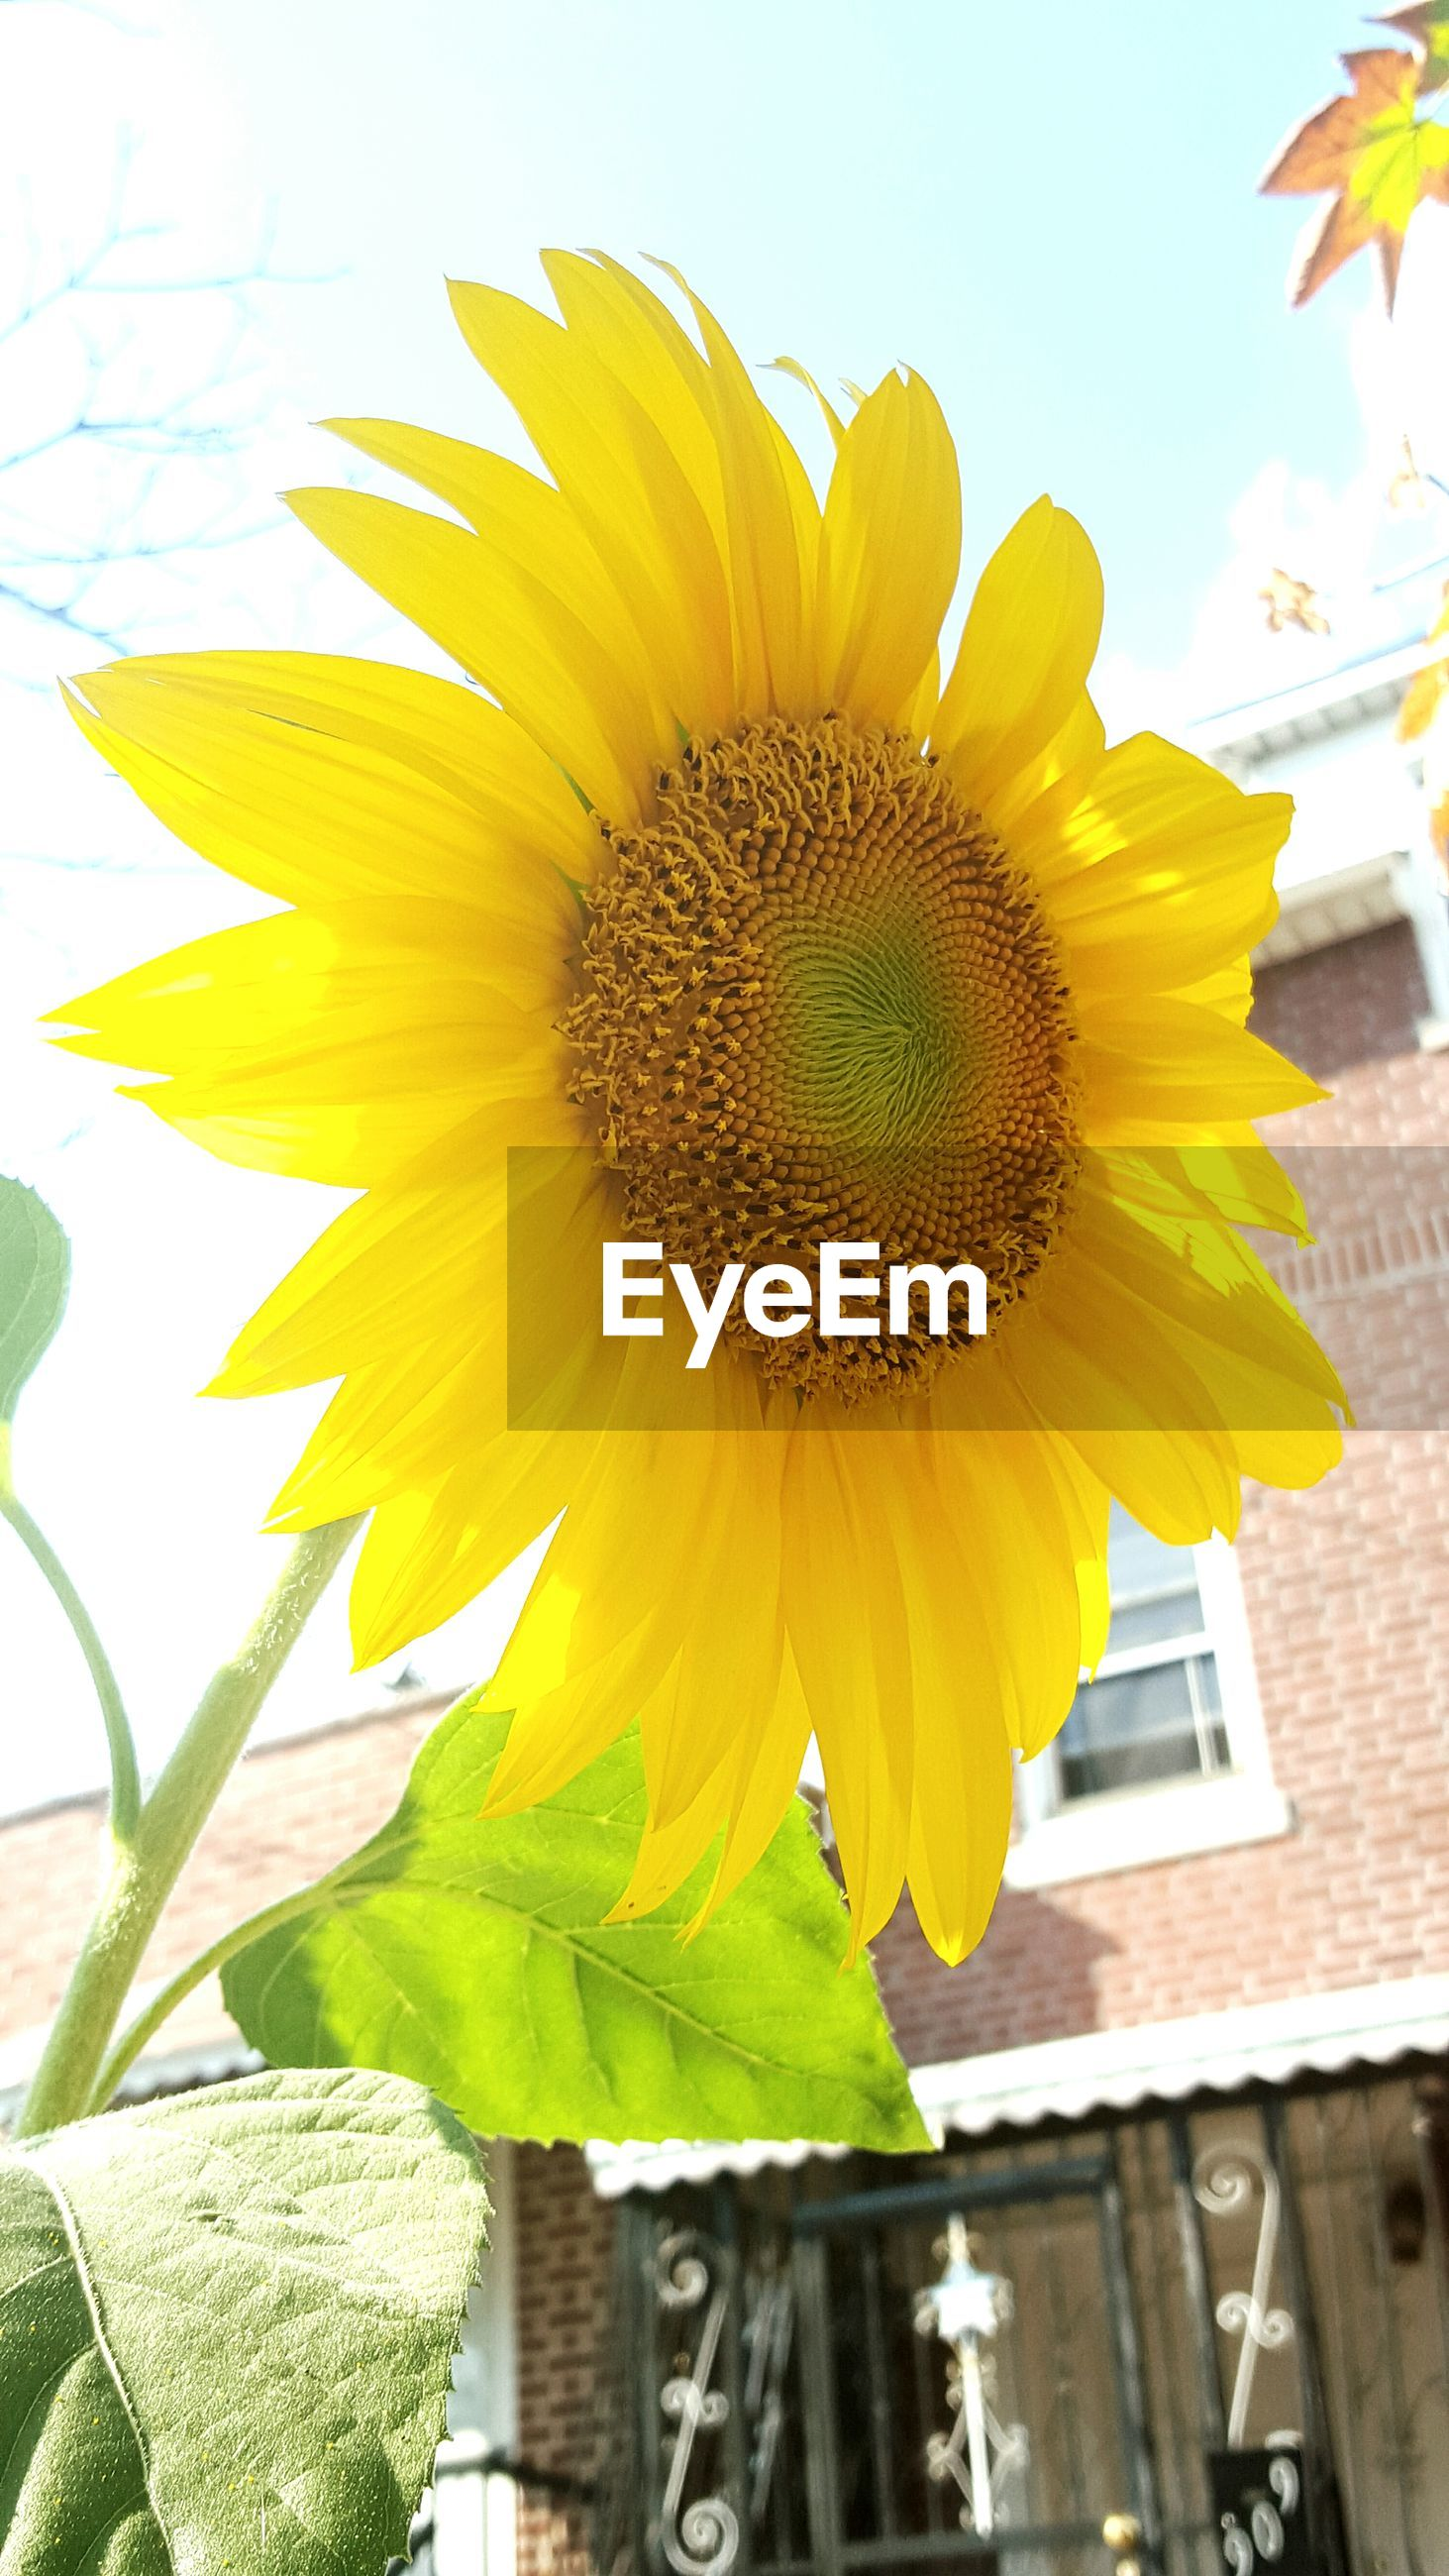 Low angle view of sunflower blooming against house in yard